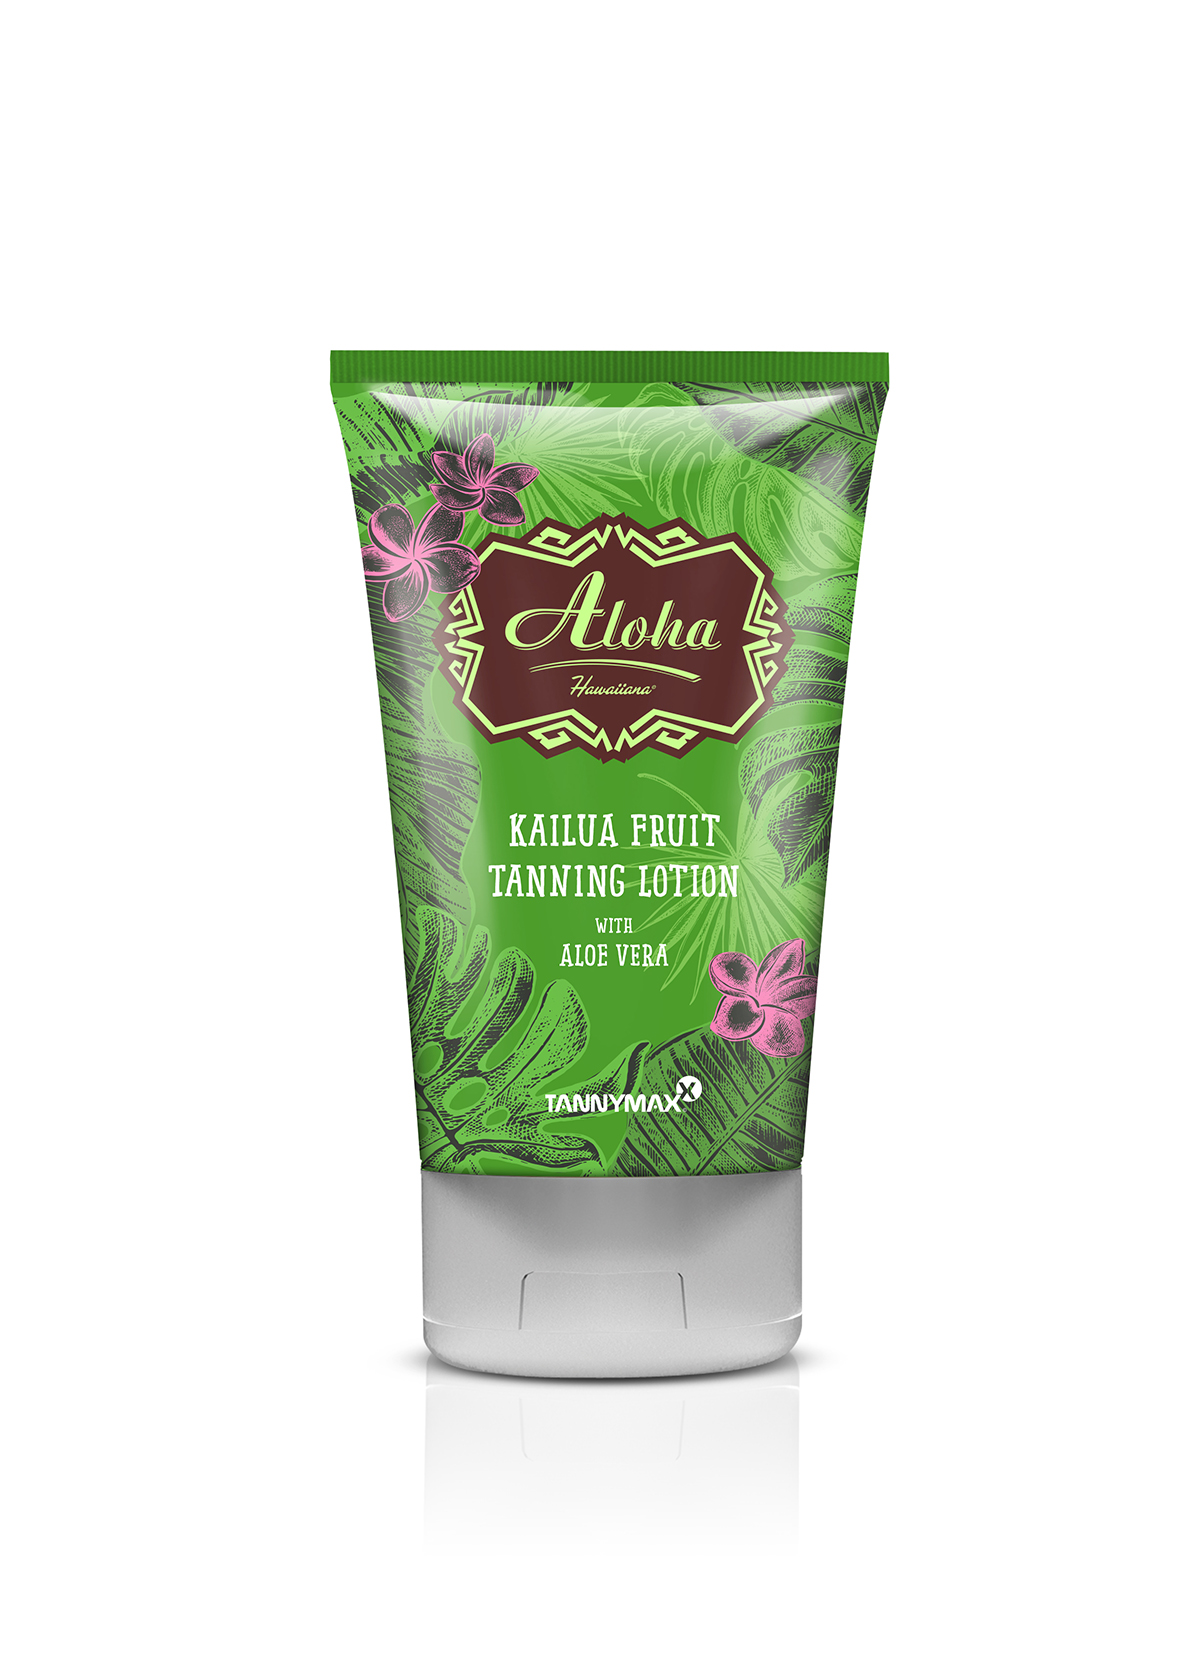 tannymaxx aloha hawaiian kailua fruit tanning lotion with aloe vera